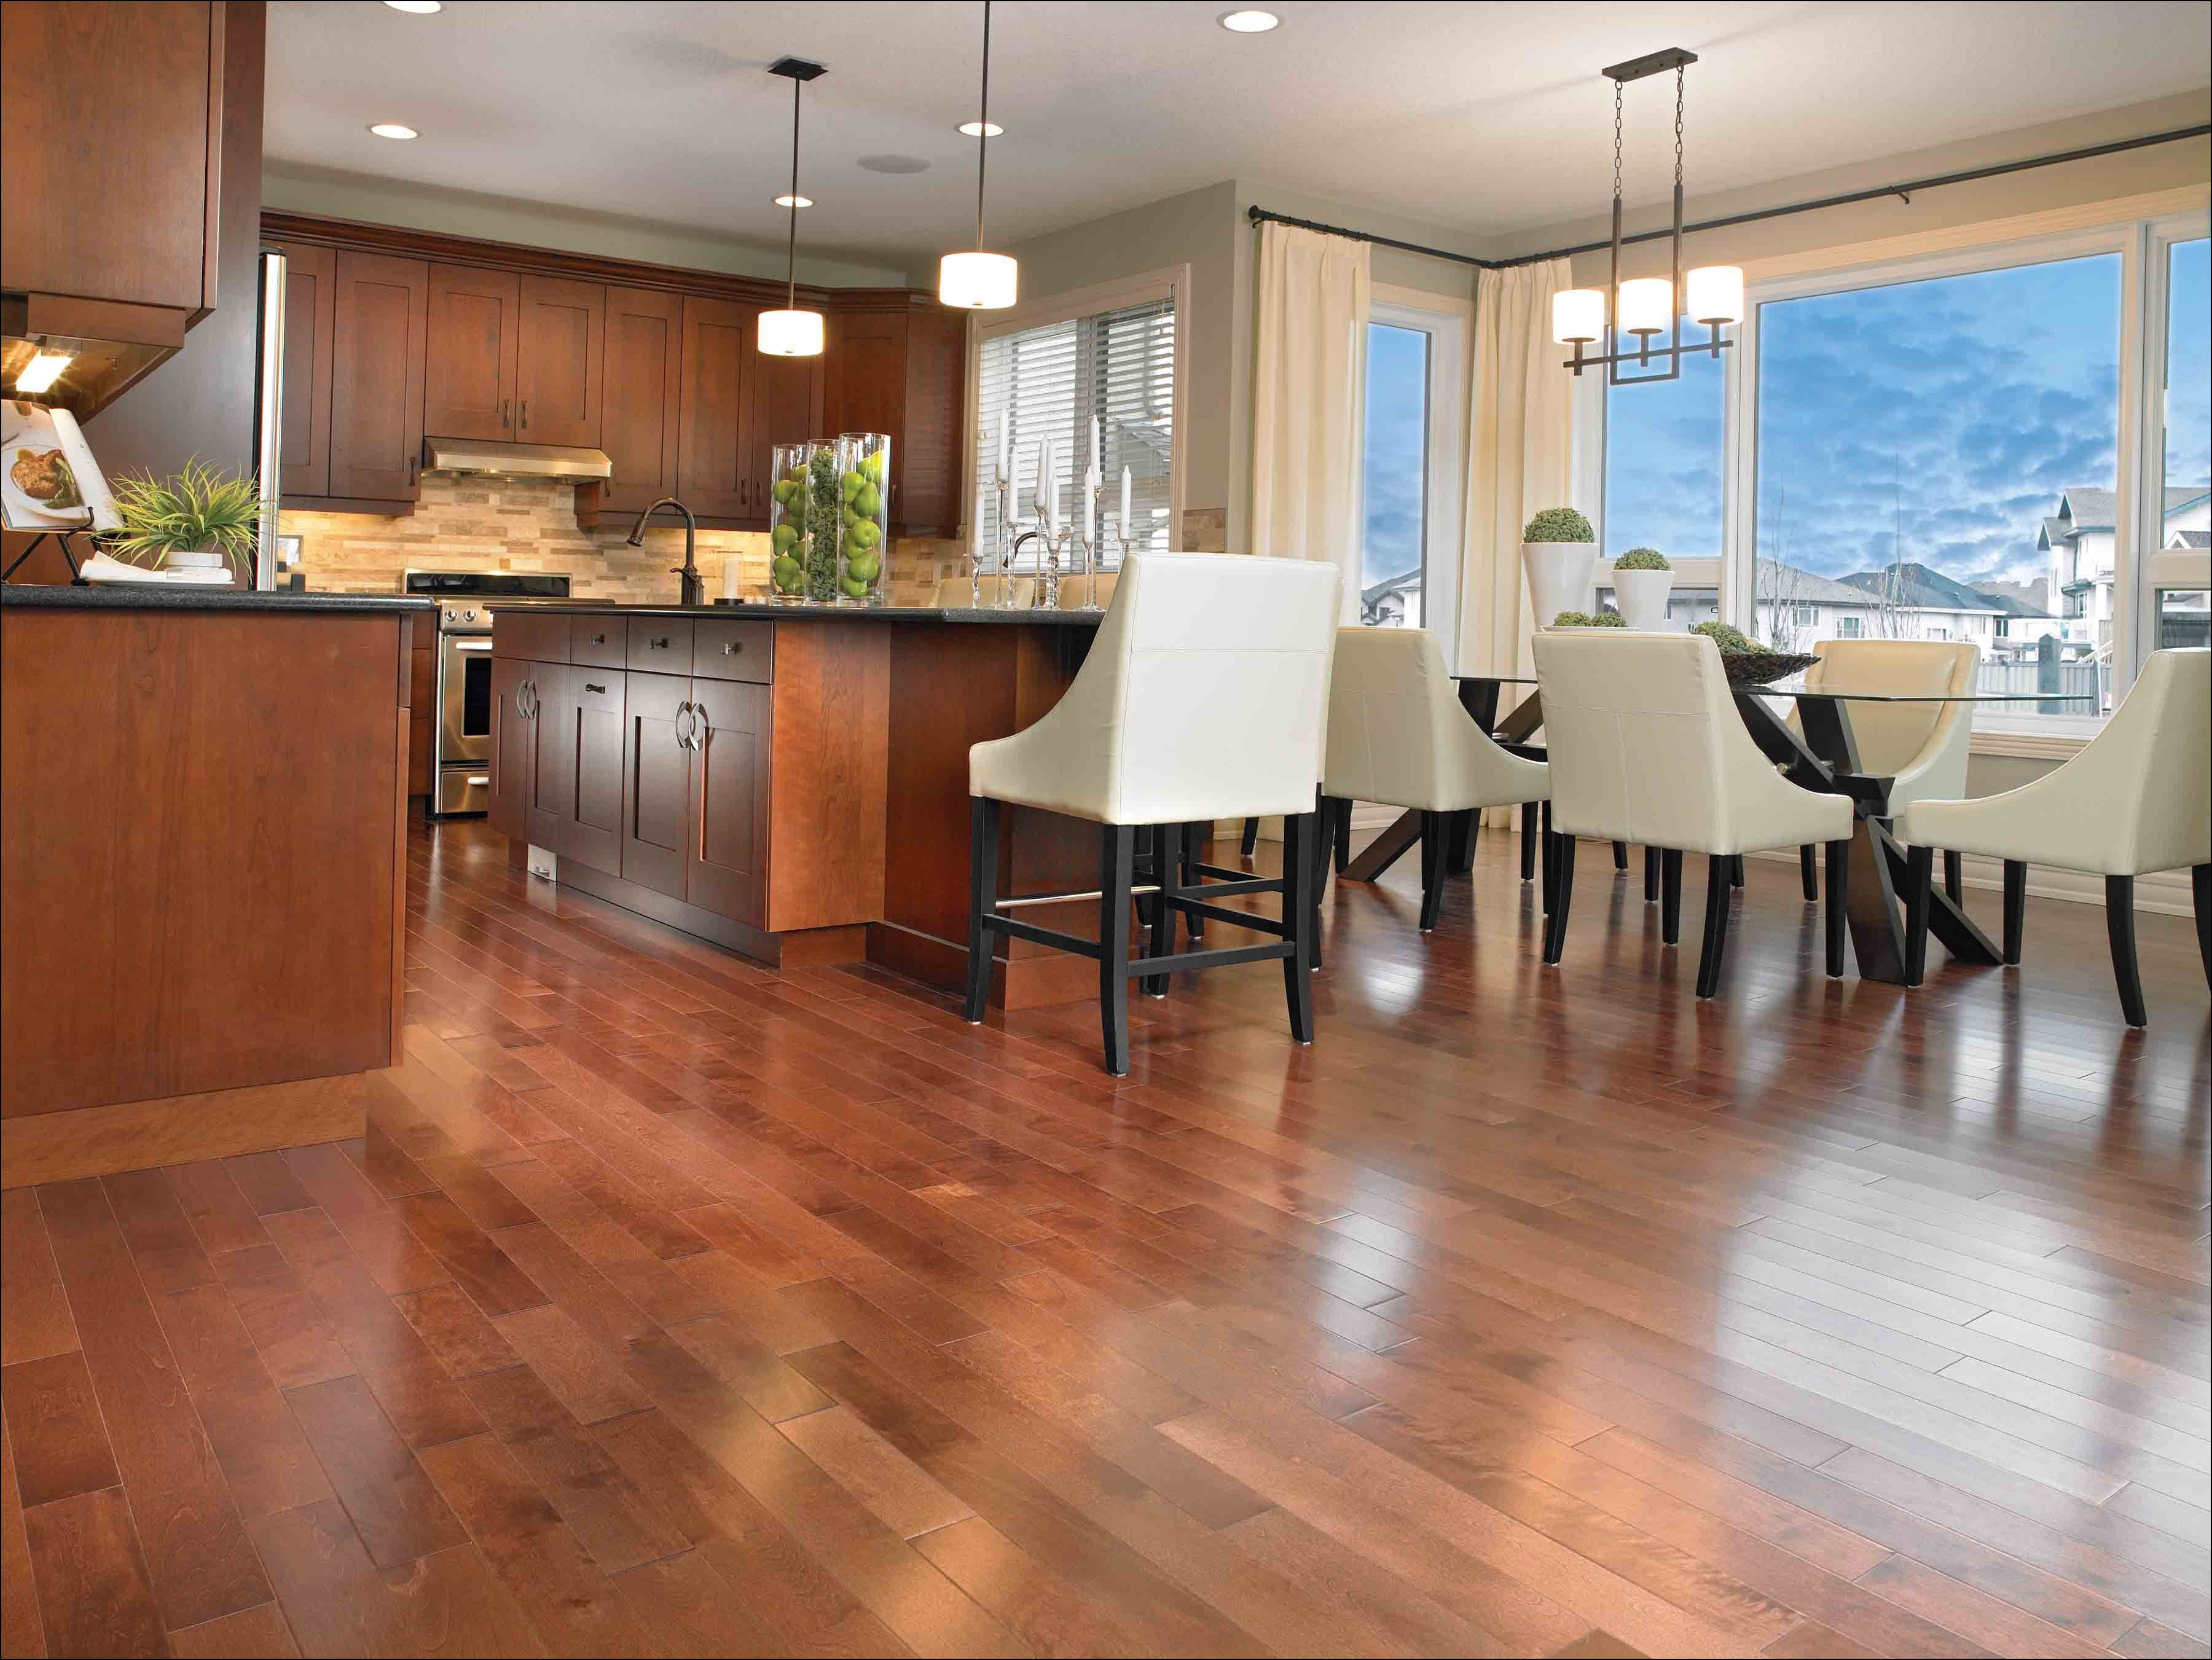 Hardwood Flooring Warehouse Los Angeles Of Hardwood Flooring Suppliers France Flooring Ideas with Hardwood Flooring Installation San Diego Images 54 Best Exotic Flooring Images On Pinterest Of Hardwood Flooring